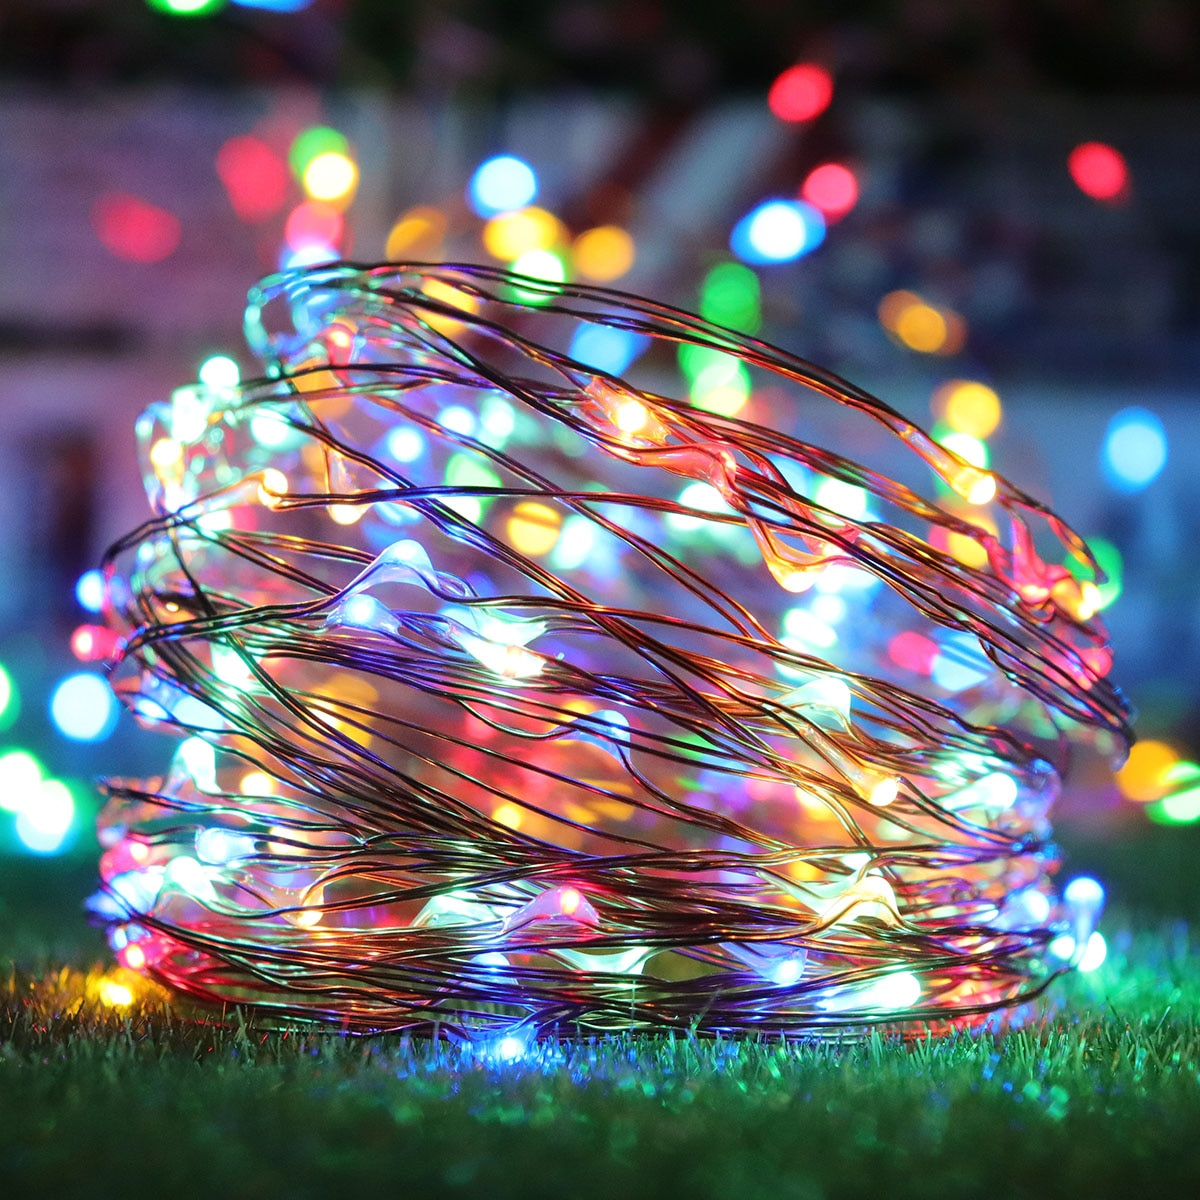 8 Modes Outdoor Solar String Lights 150LED Solar Lamps Waterproof Fairy Garland String Lights Christmas Party for Garden Street